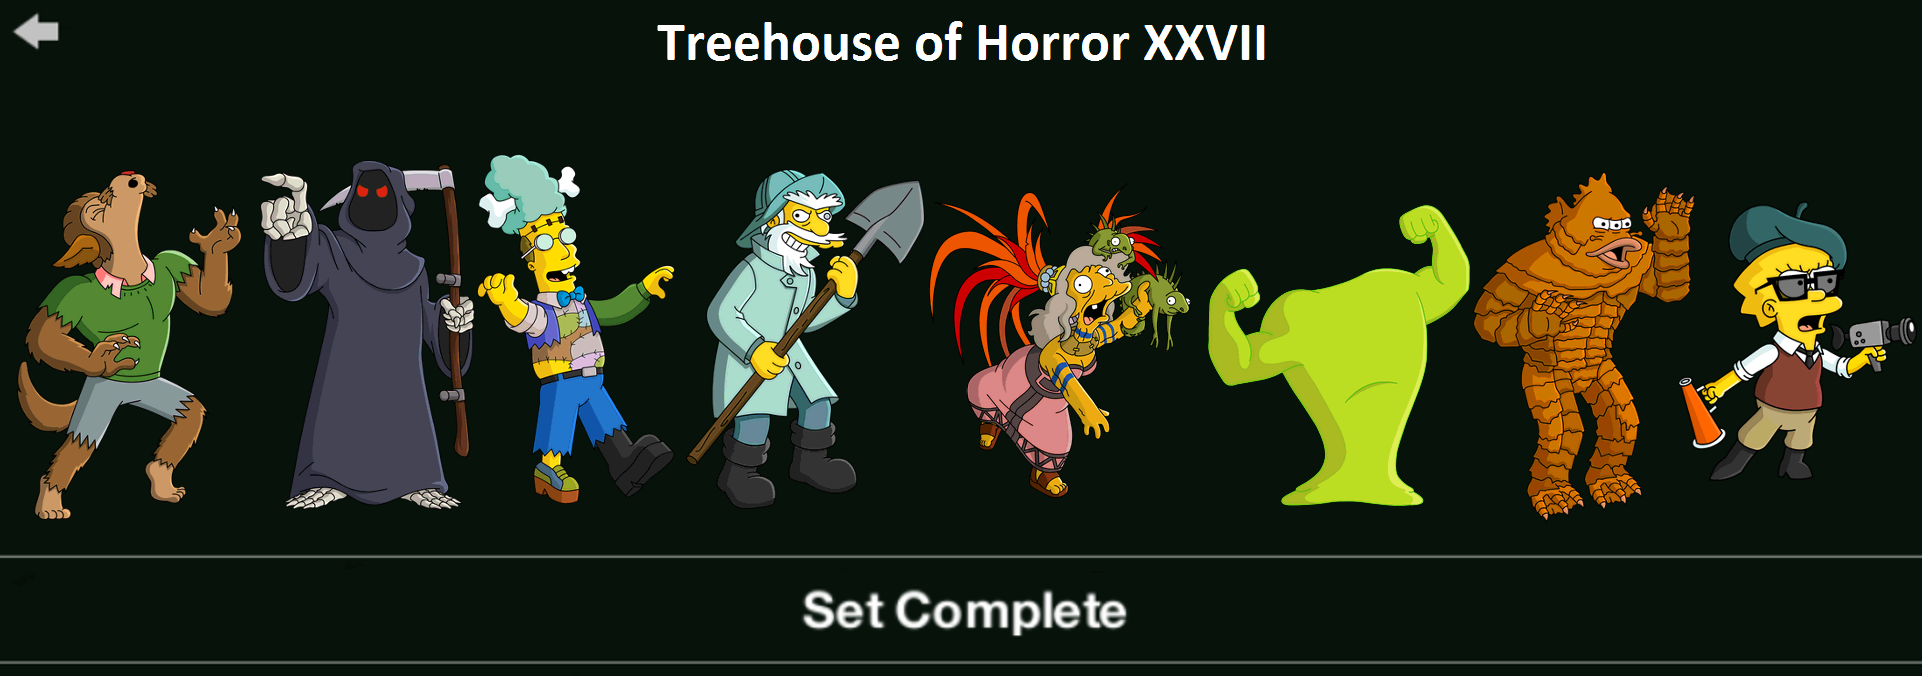 TSTO Treehouse of Horror XXVII.png